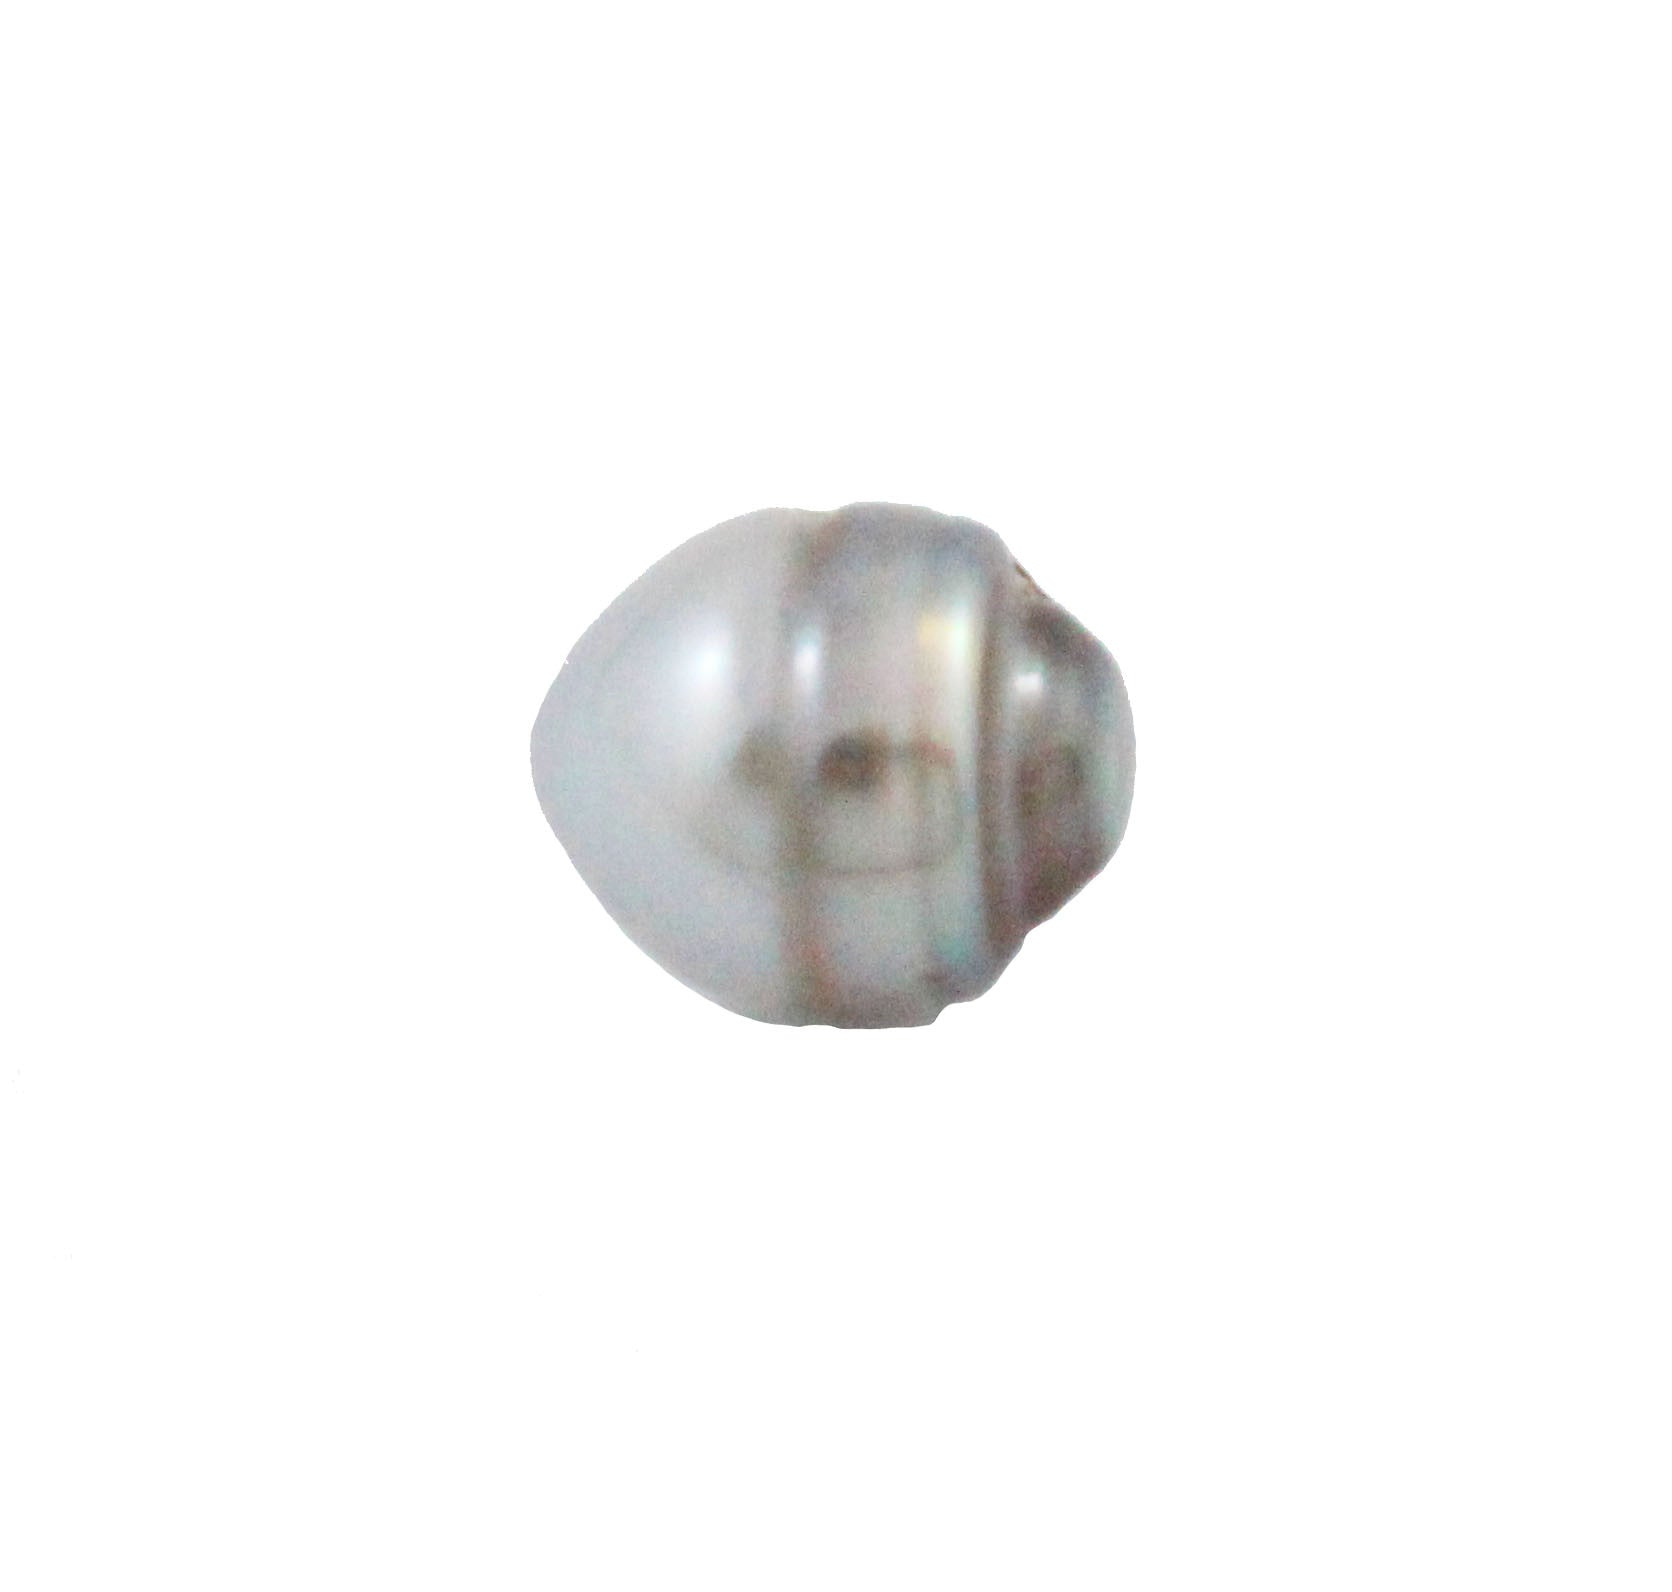 Tahitian pearl undrilled 0.98gr mm 10.14x8.34mm - Purchase only with custom order - Sarah Hughes - 2